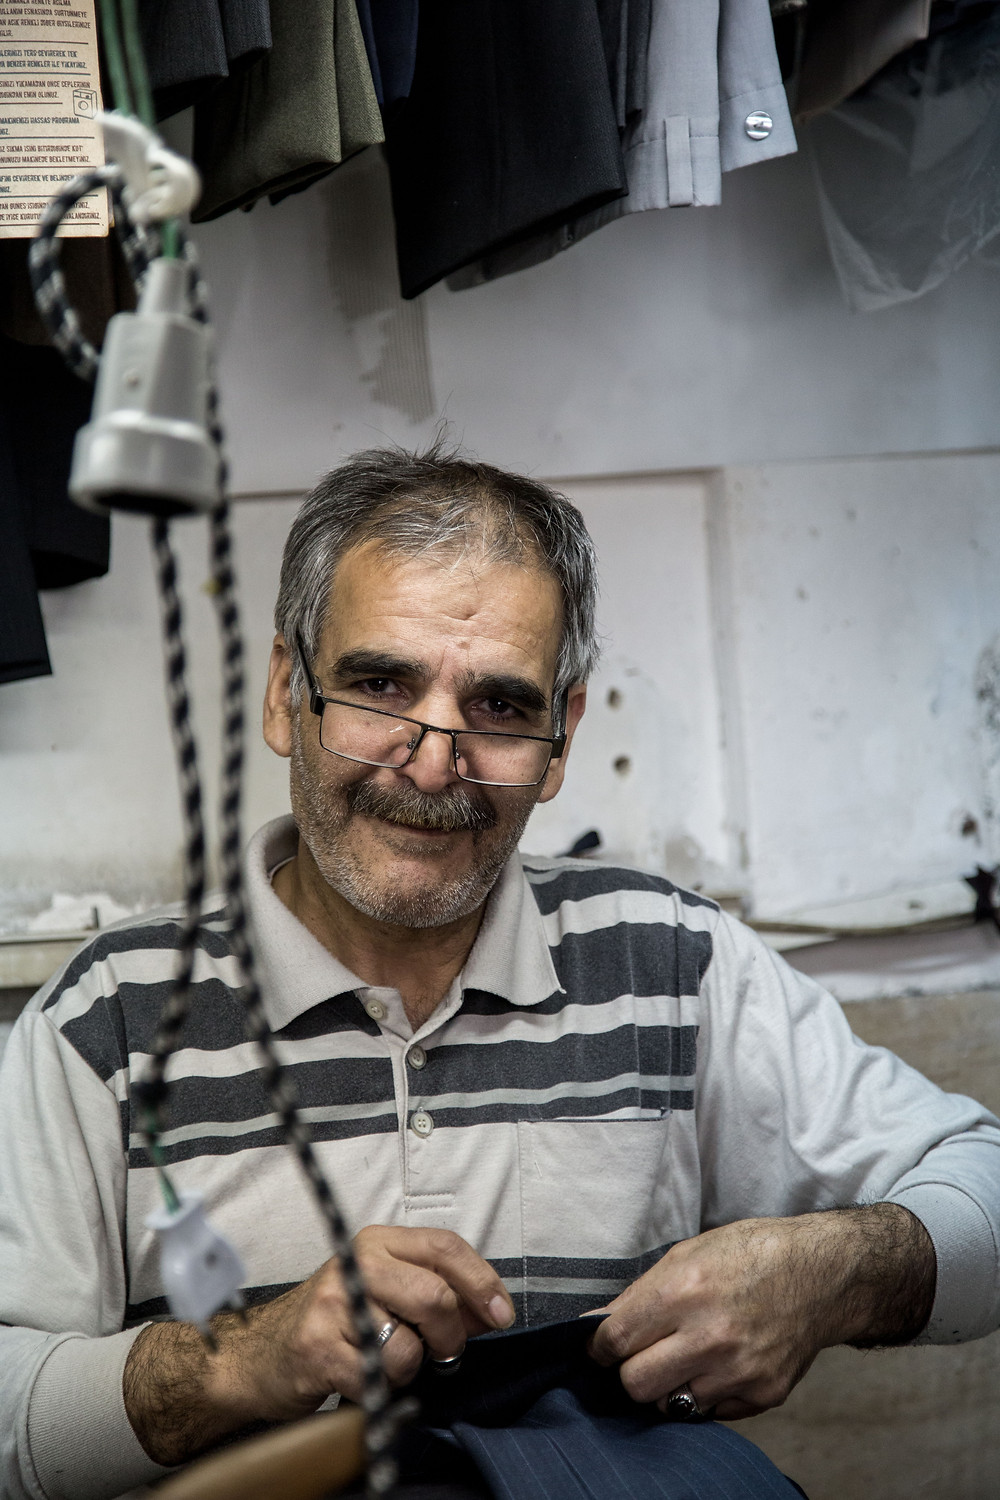 A man working at his shop near Gheytariyeh